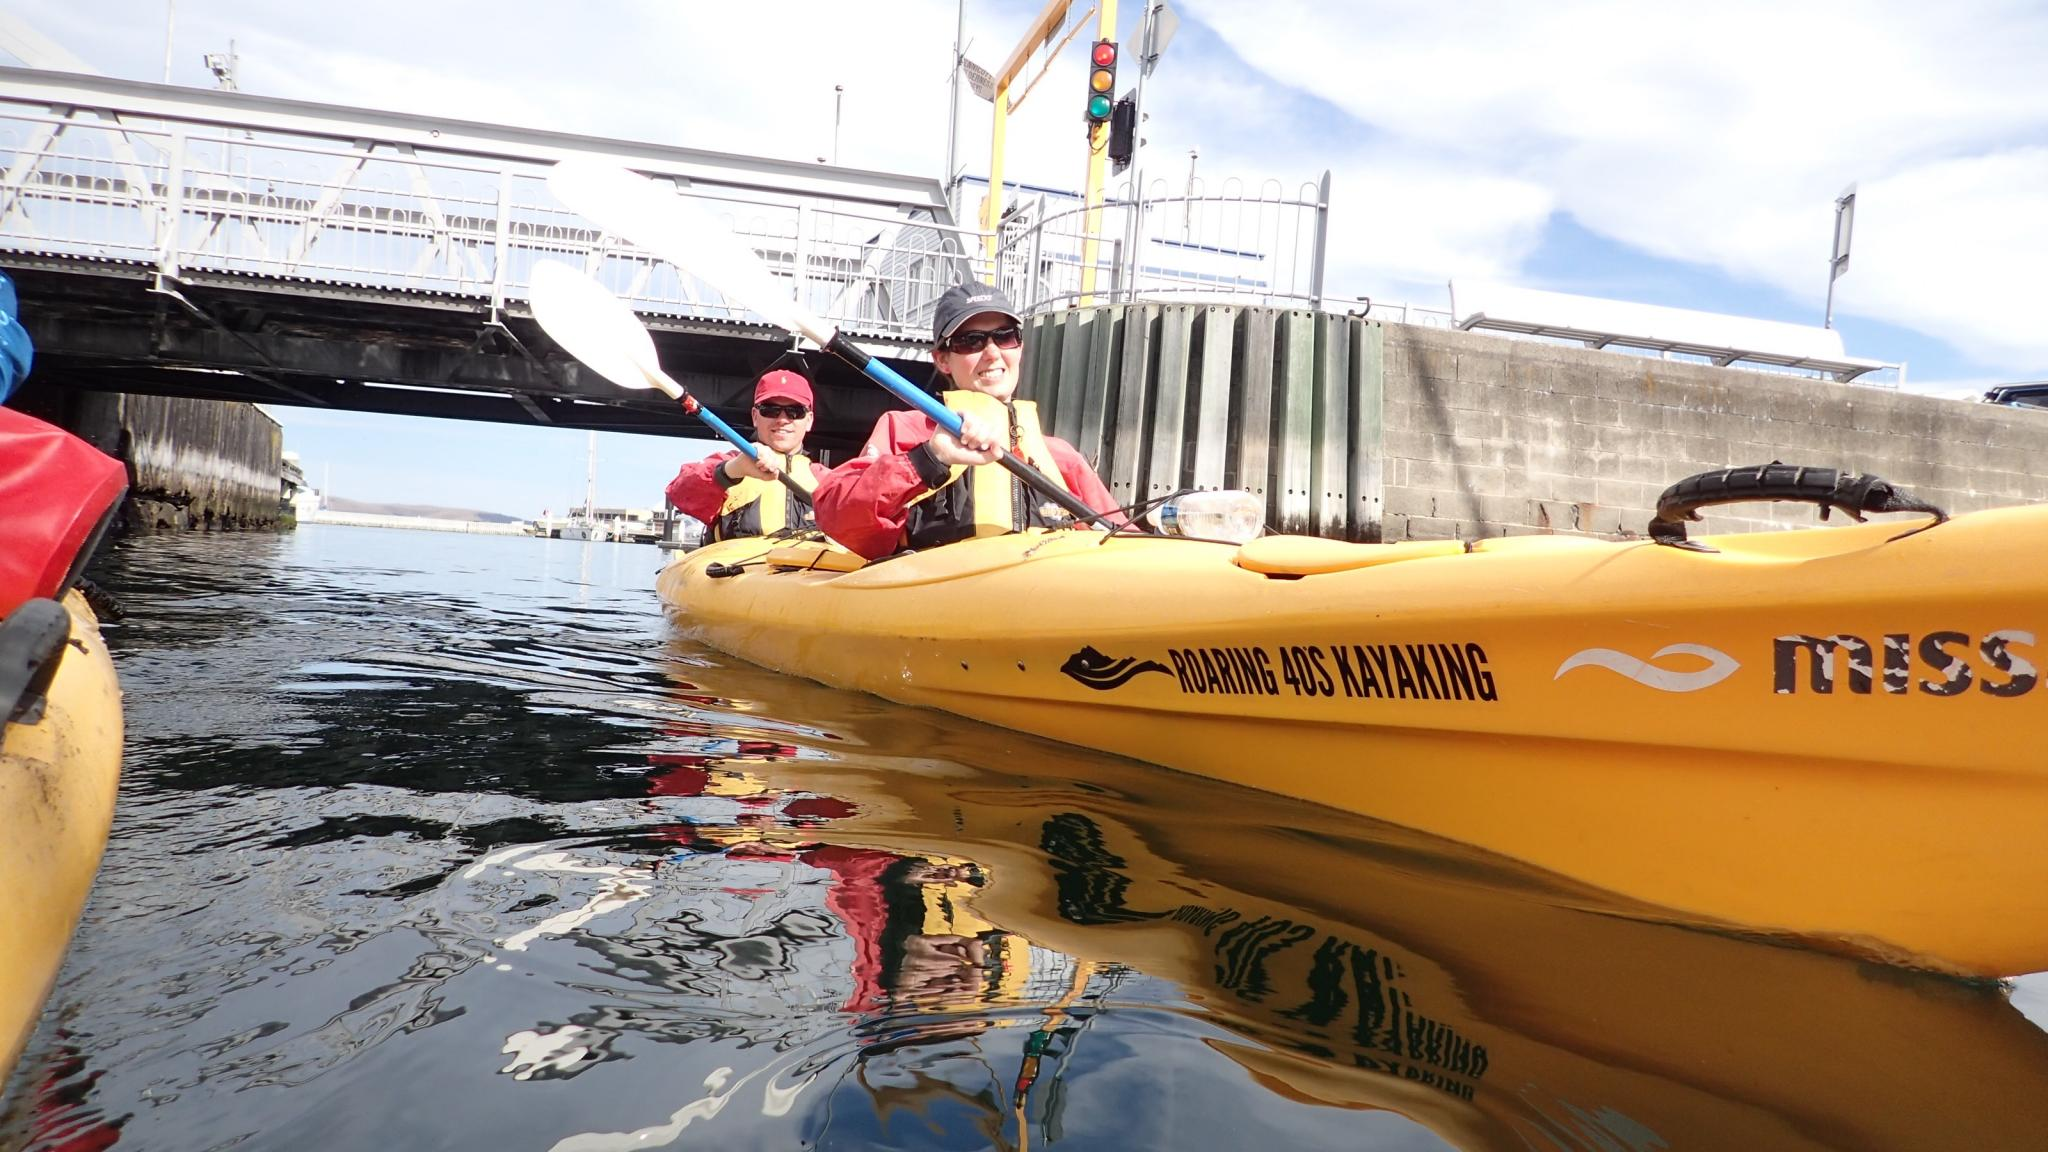 Kayakers on Hobart Waterfront Harbour